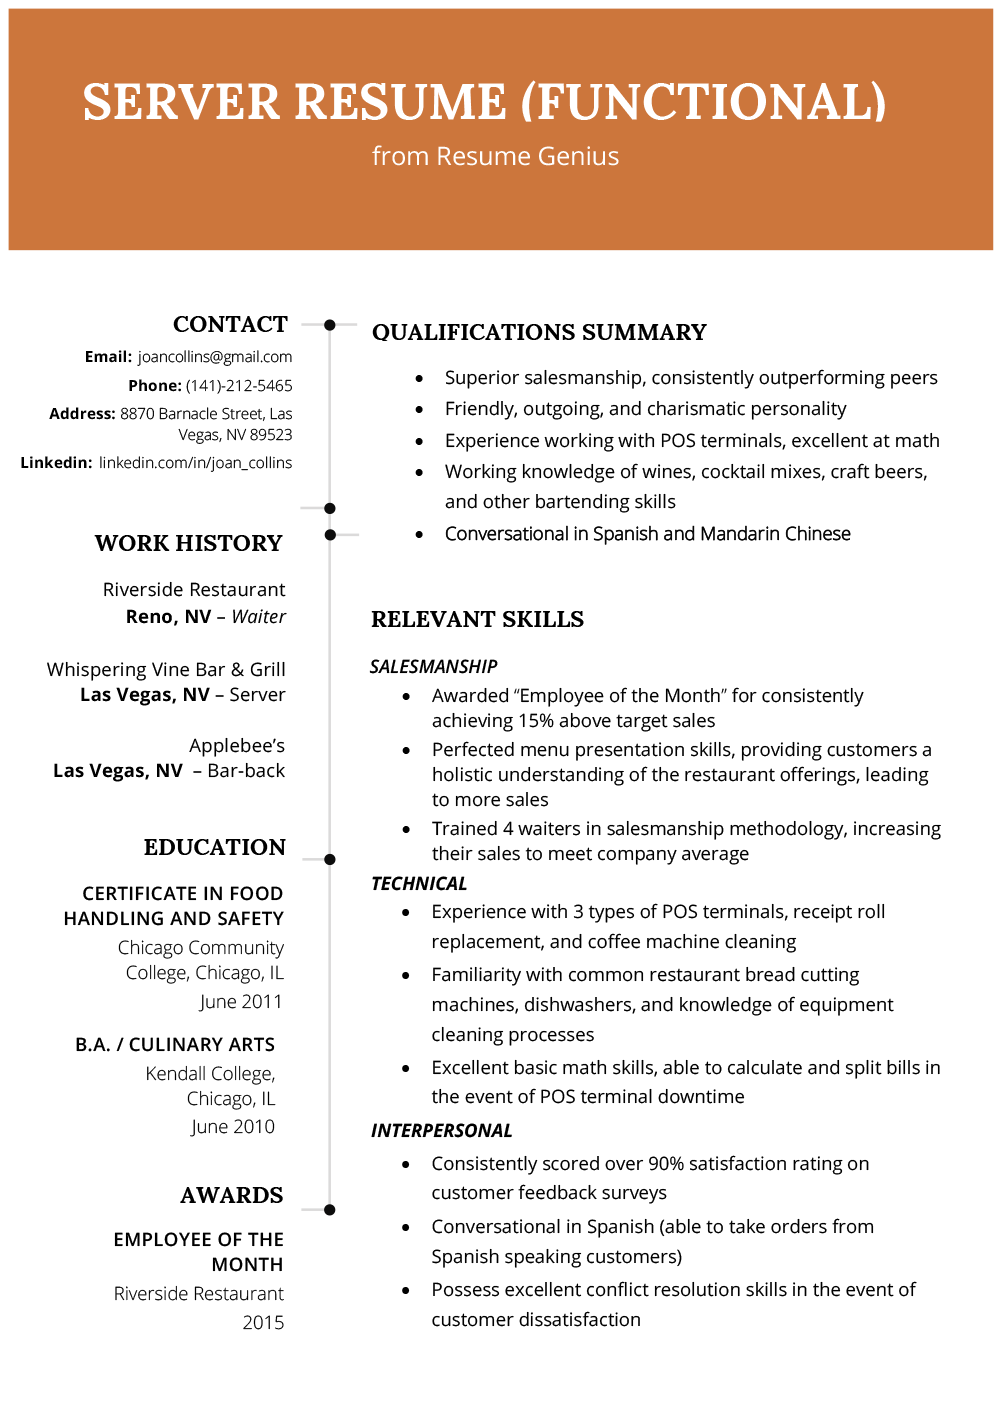 Functional Resume Template Functional Resume Sample functional resume template|wikiresume.com